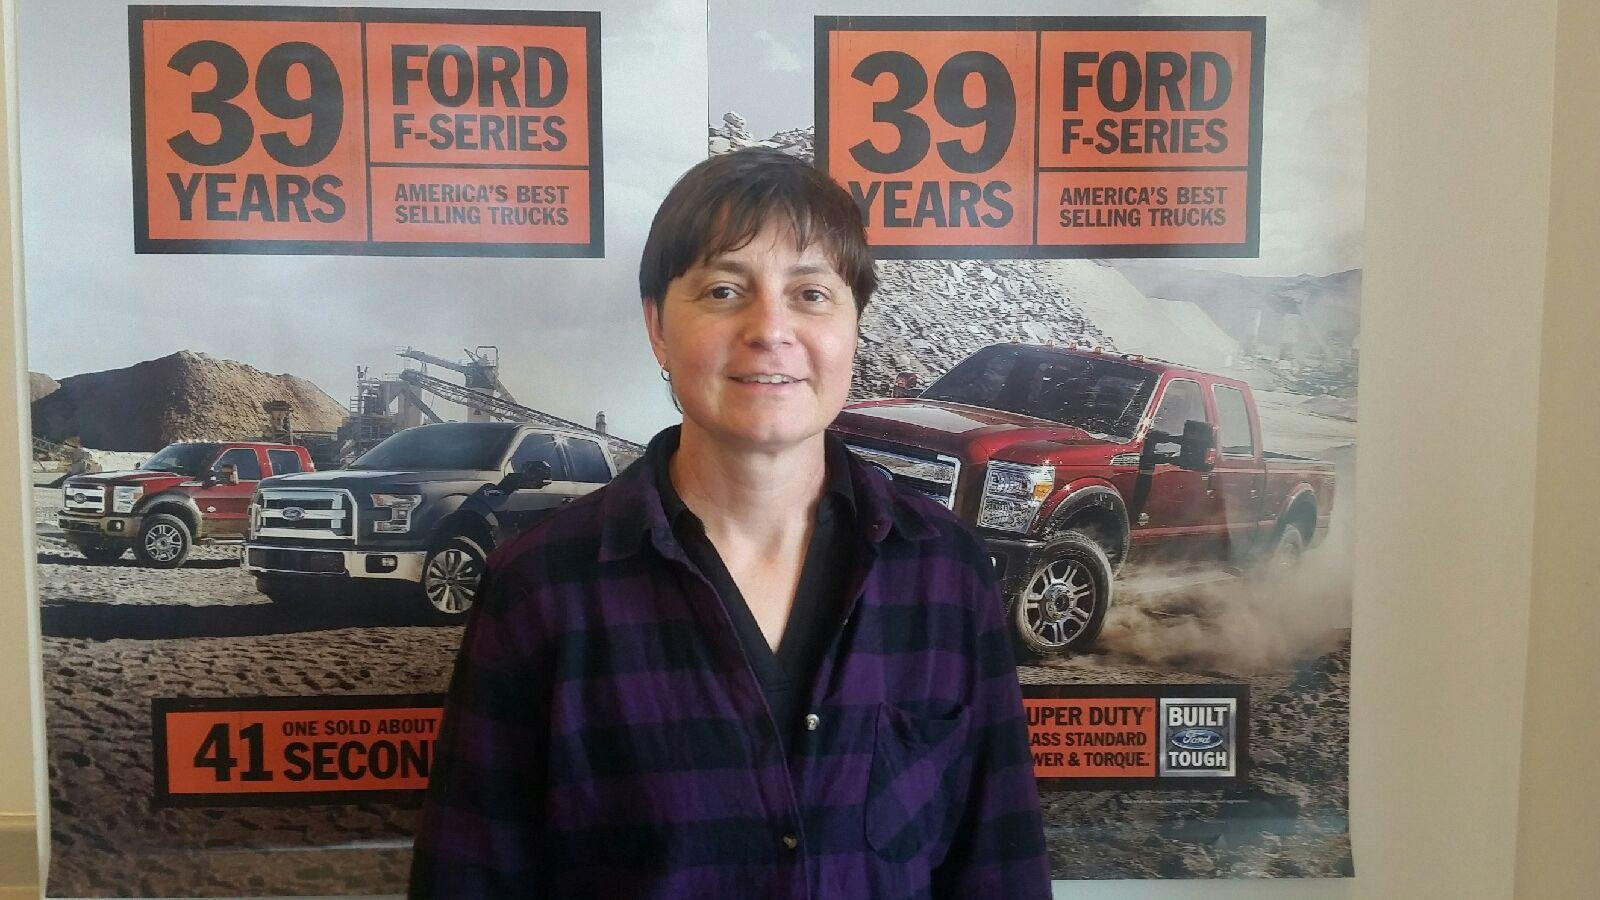 second cars dealership third get glances for used ready ford kingston petrie dealer parts and fourth